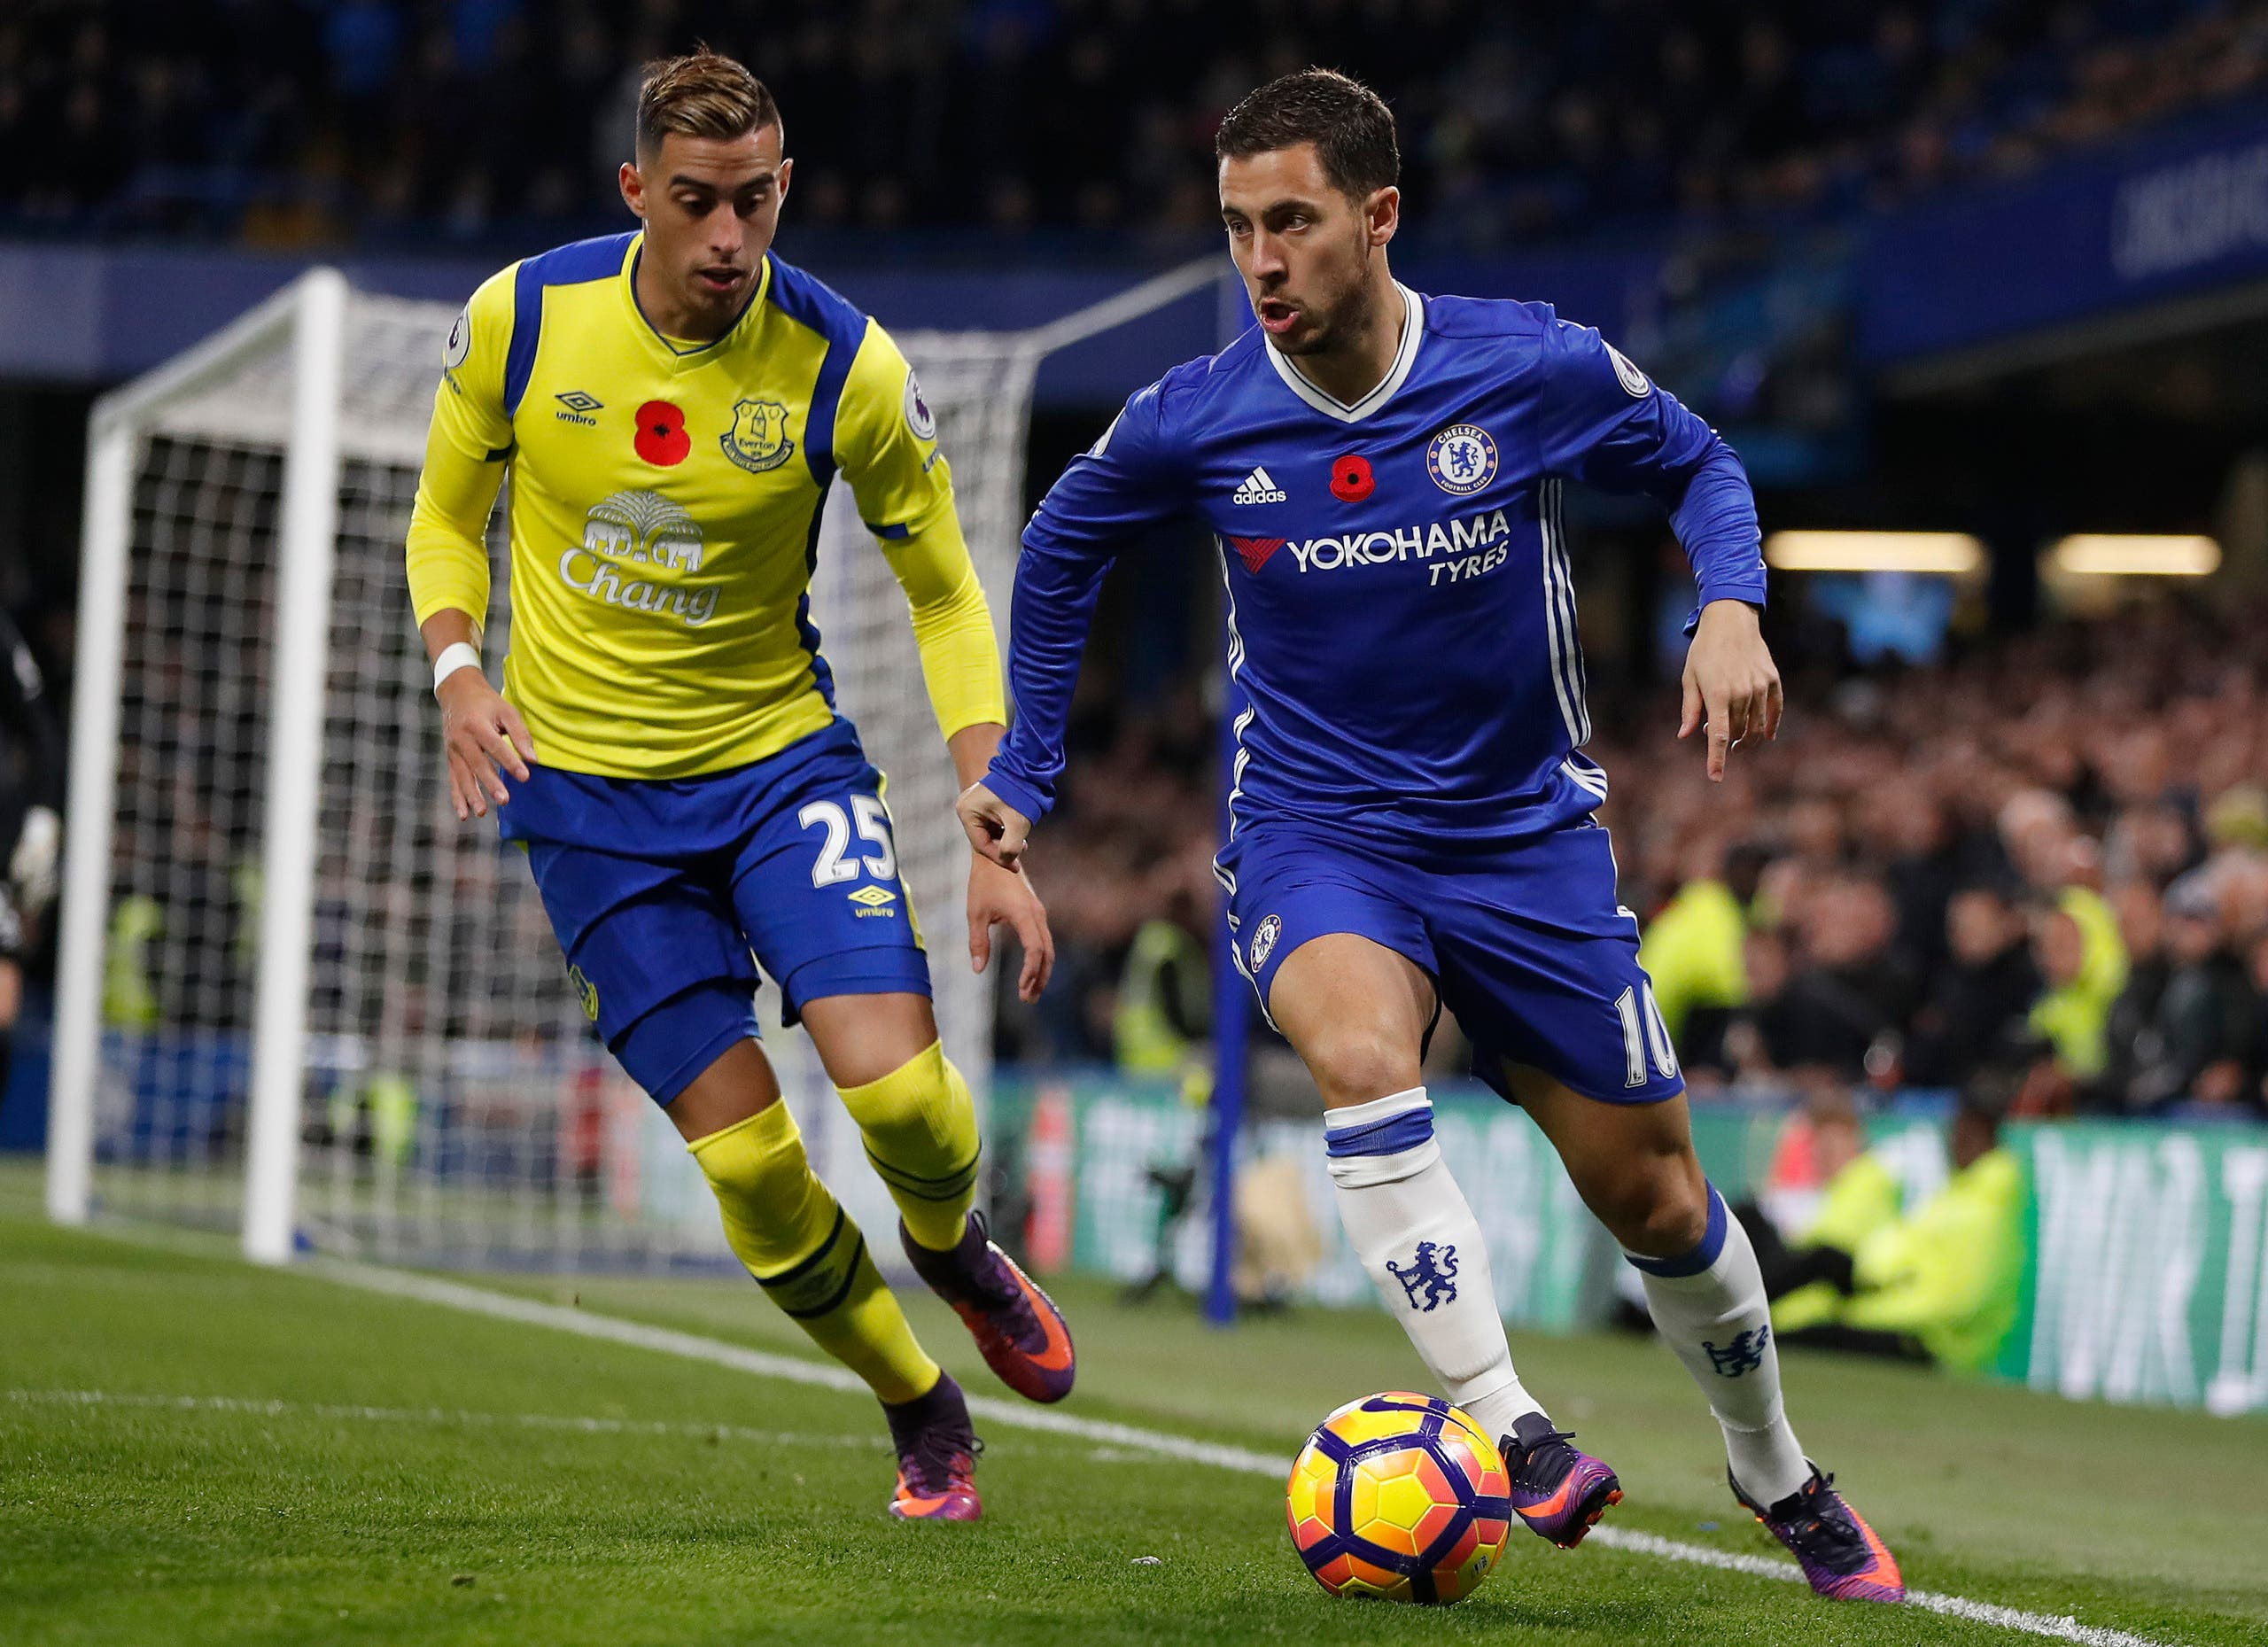 Chelsea's Eden Hazard, right, vies for the ball with Everton's Ramiro Funes Mori during the English Premier League soccer match between Chelsea and Everton at Stamford Bridge stadium in London, Saturday, Nov. 5, 2016. (AP)